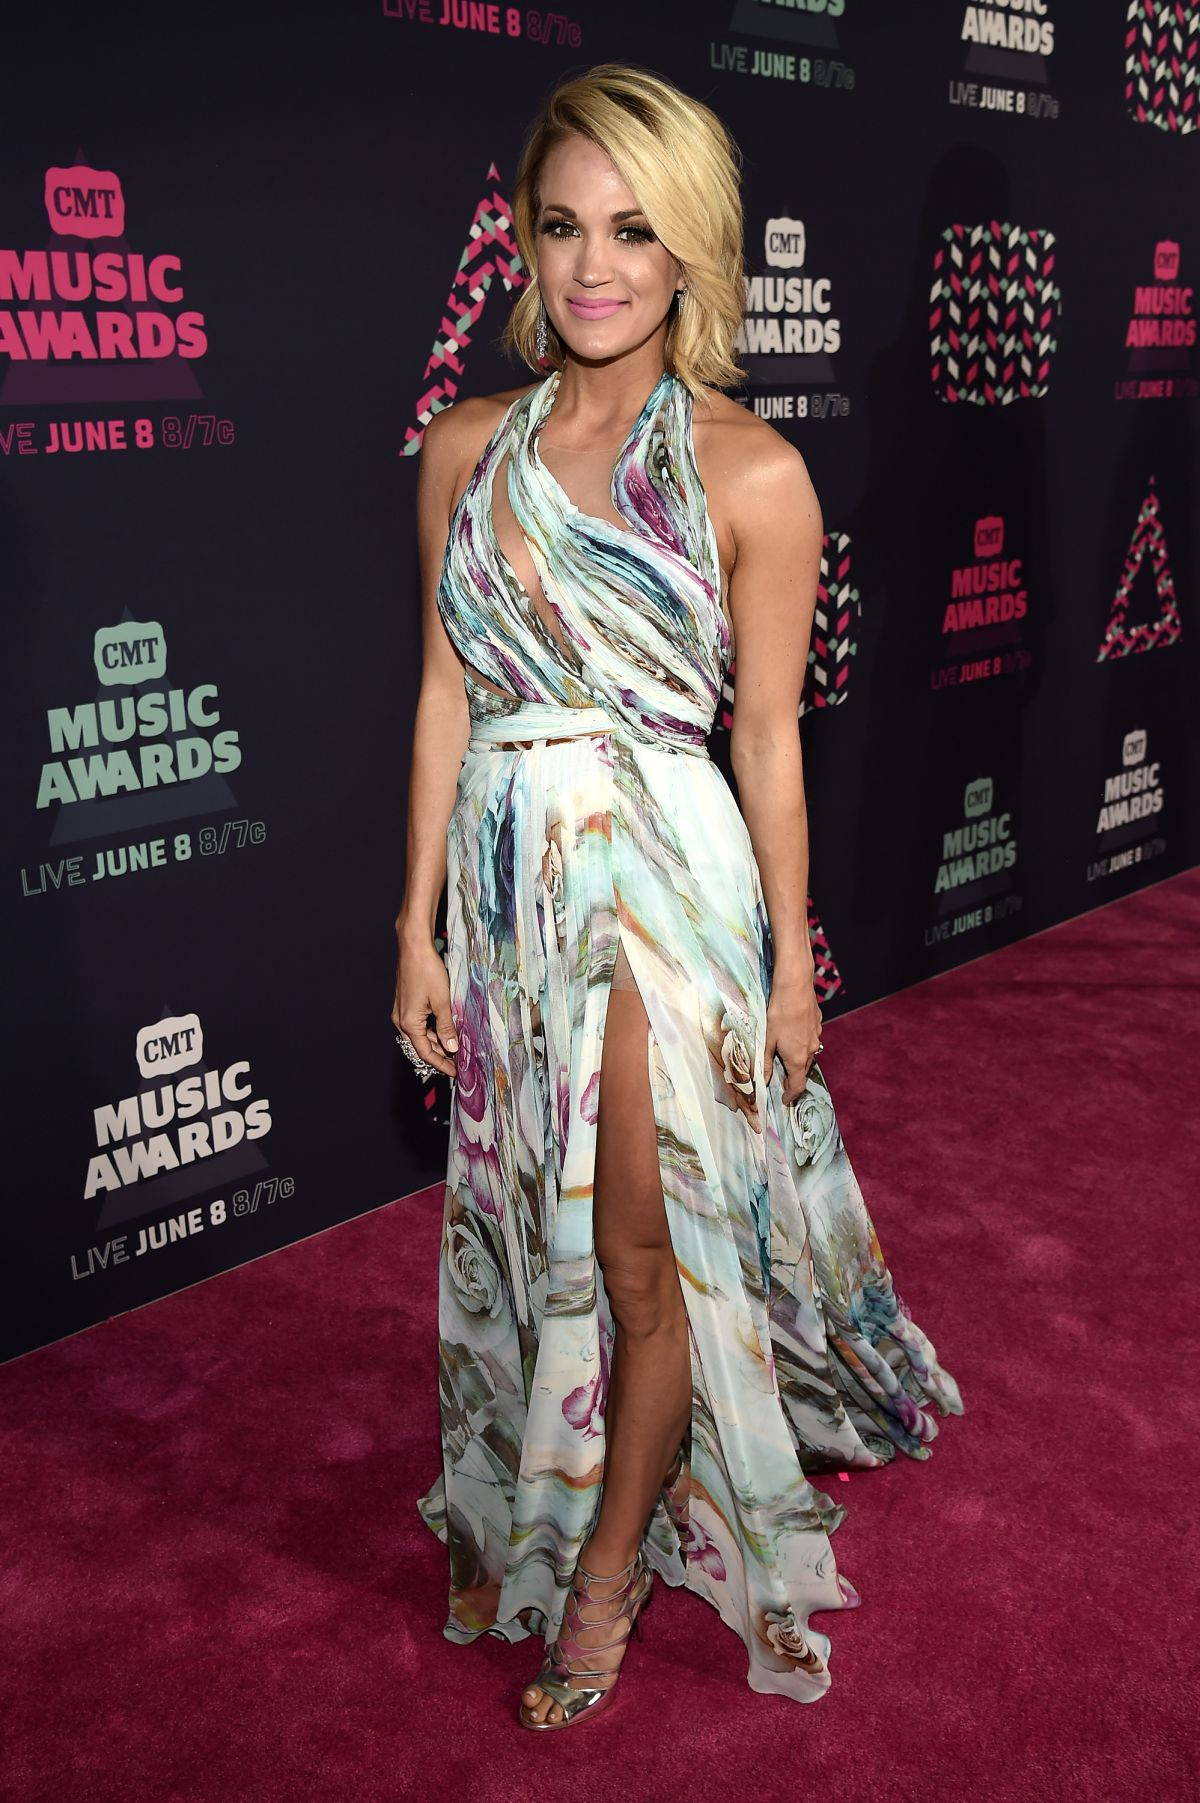 Carrie Underwood At 2016 CMT Music Awards In Nashville